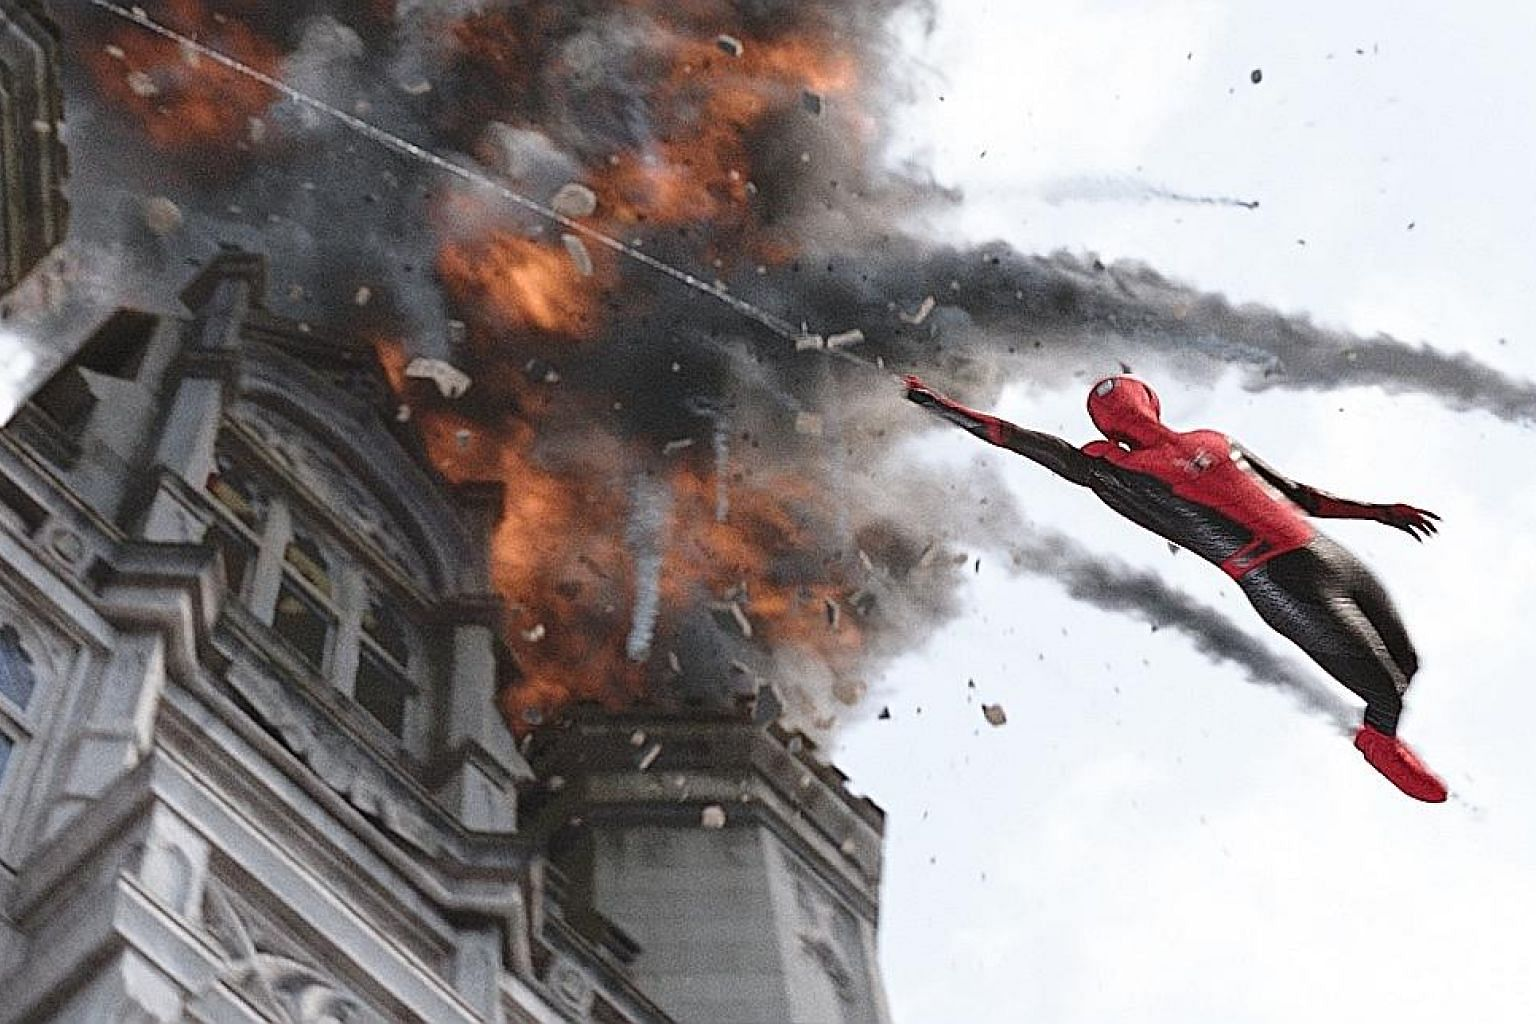 Spider-Man: Far From Home (above) is one of this year's top hits. Singapore film Wet Season, which stars Yang Shi Bin and Yeo Yann Yann (both left), is a thoughtful award-winning drama.